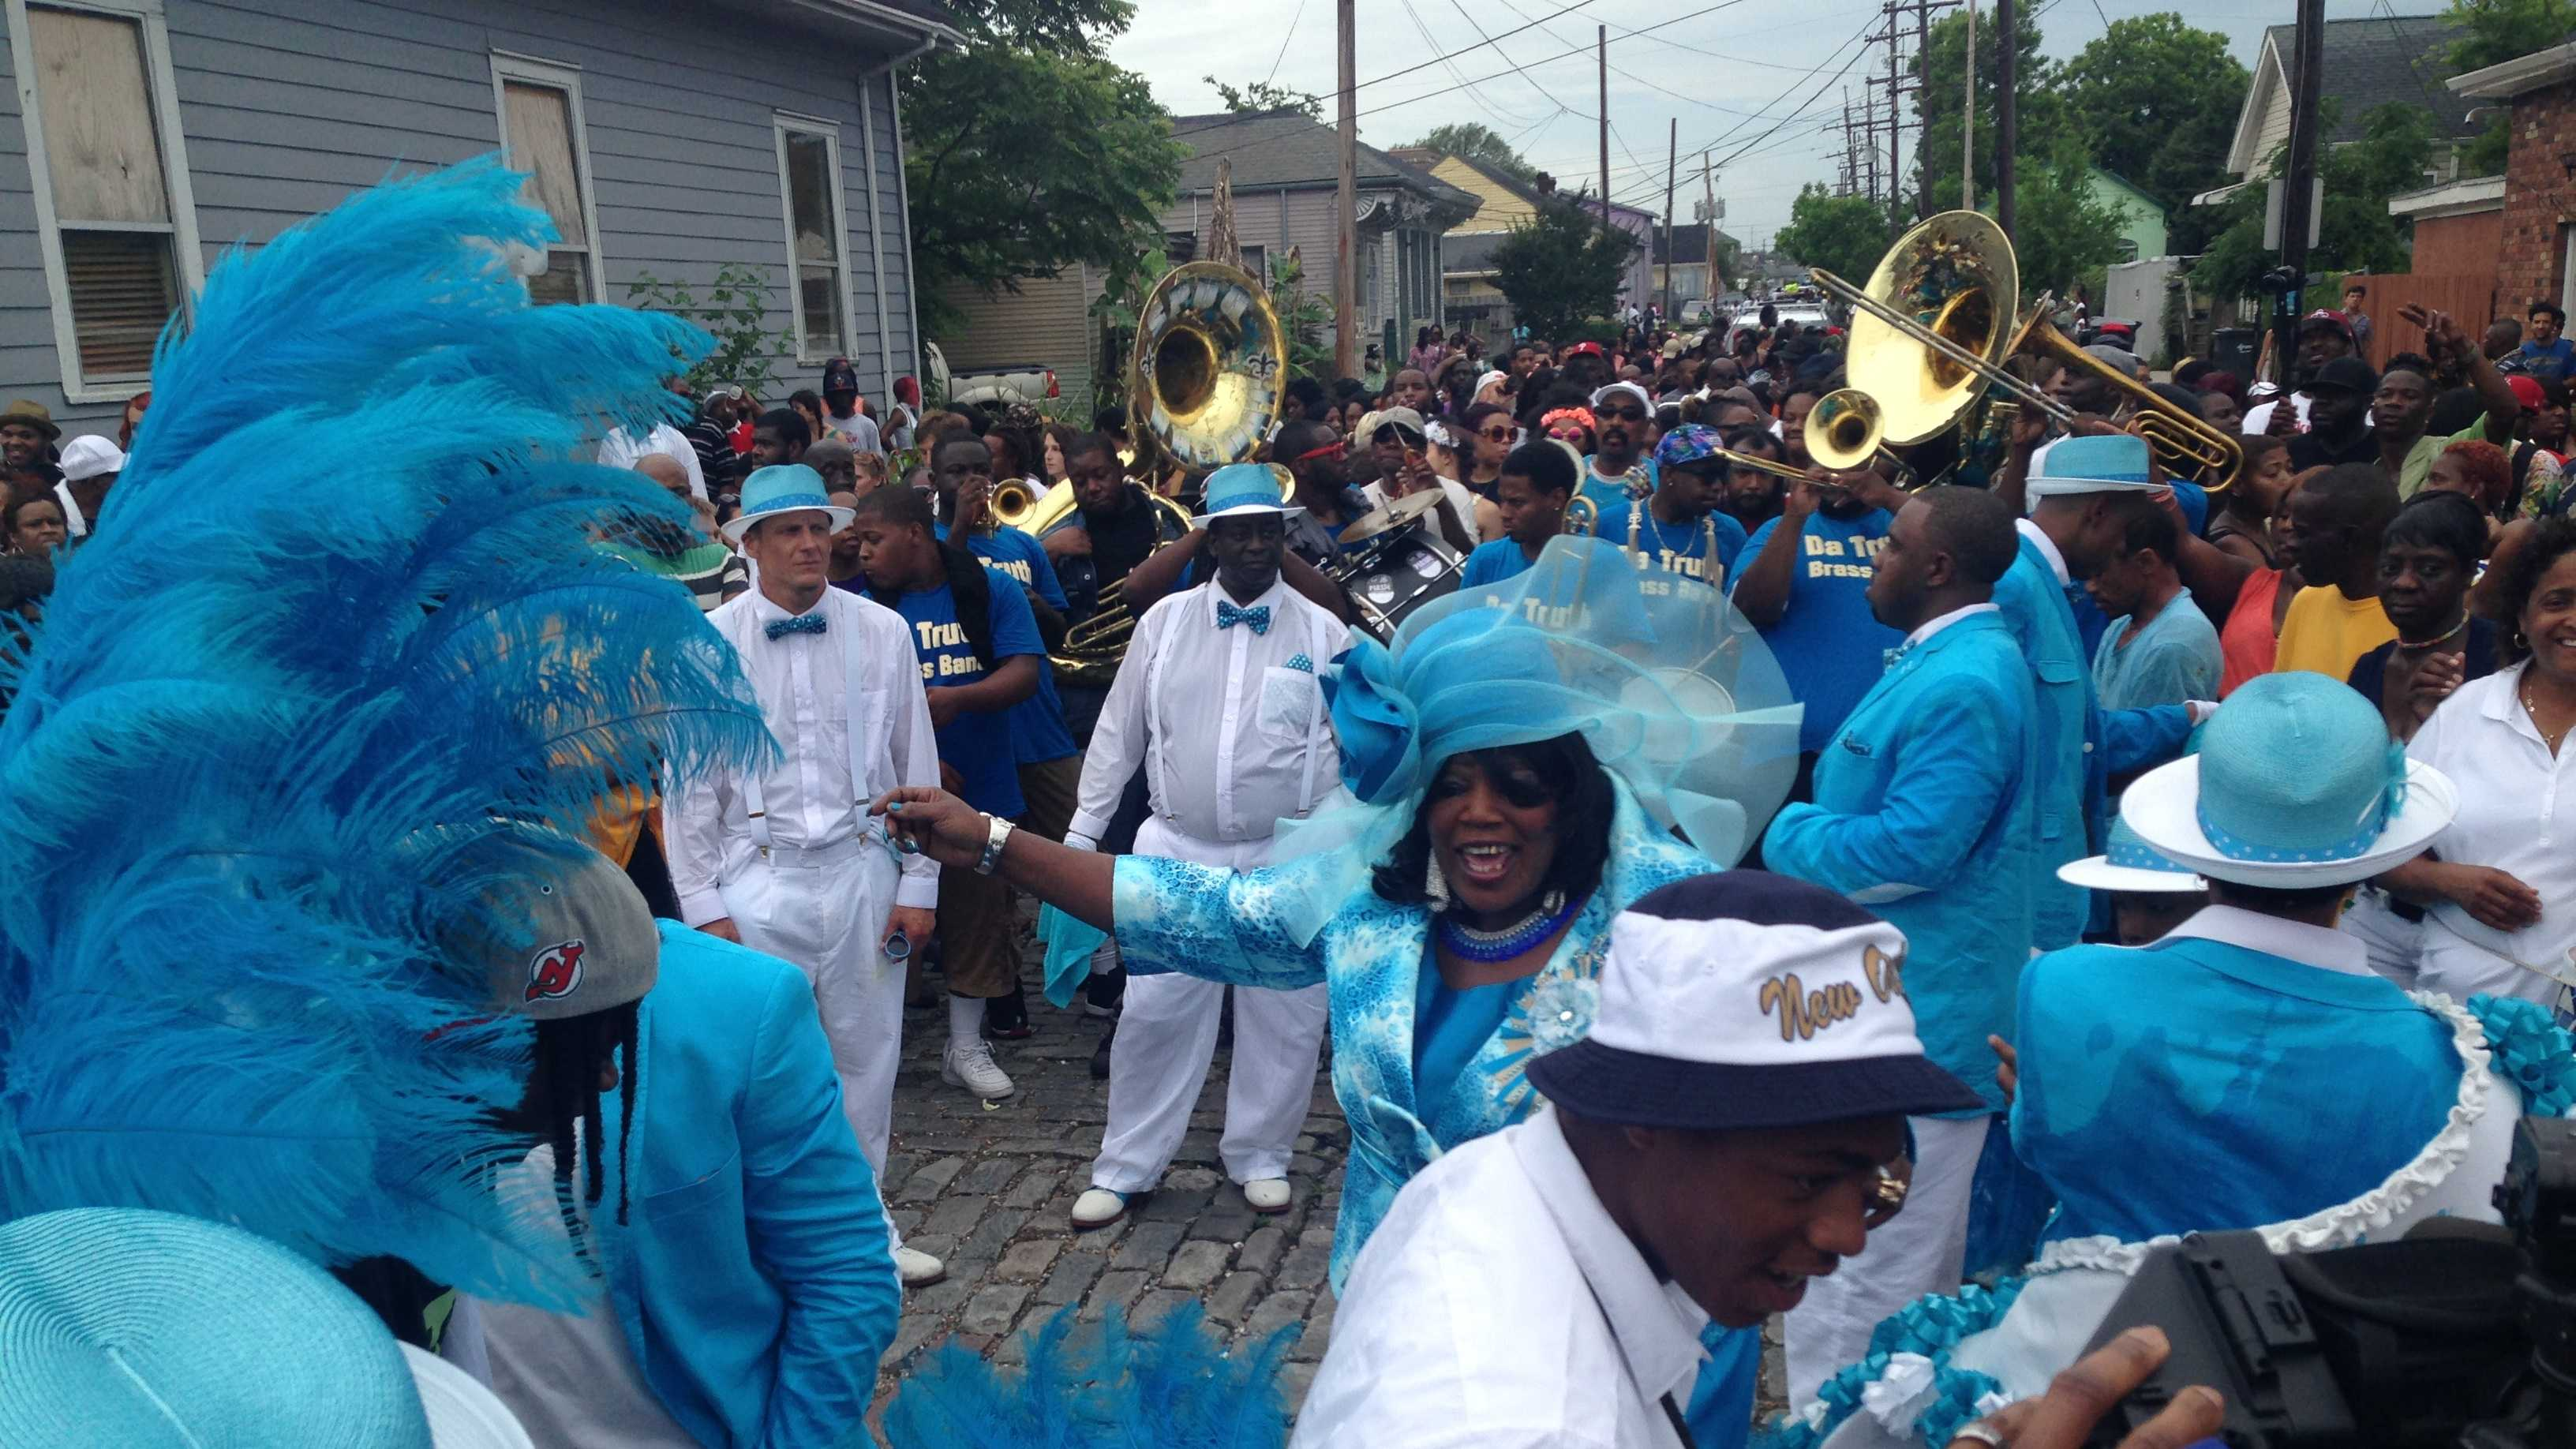 A year after a mass shooting disrupted the Mother's Day second-line, the parade returned to the 7th Ward intersection where the shooting happened.